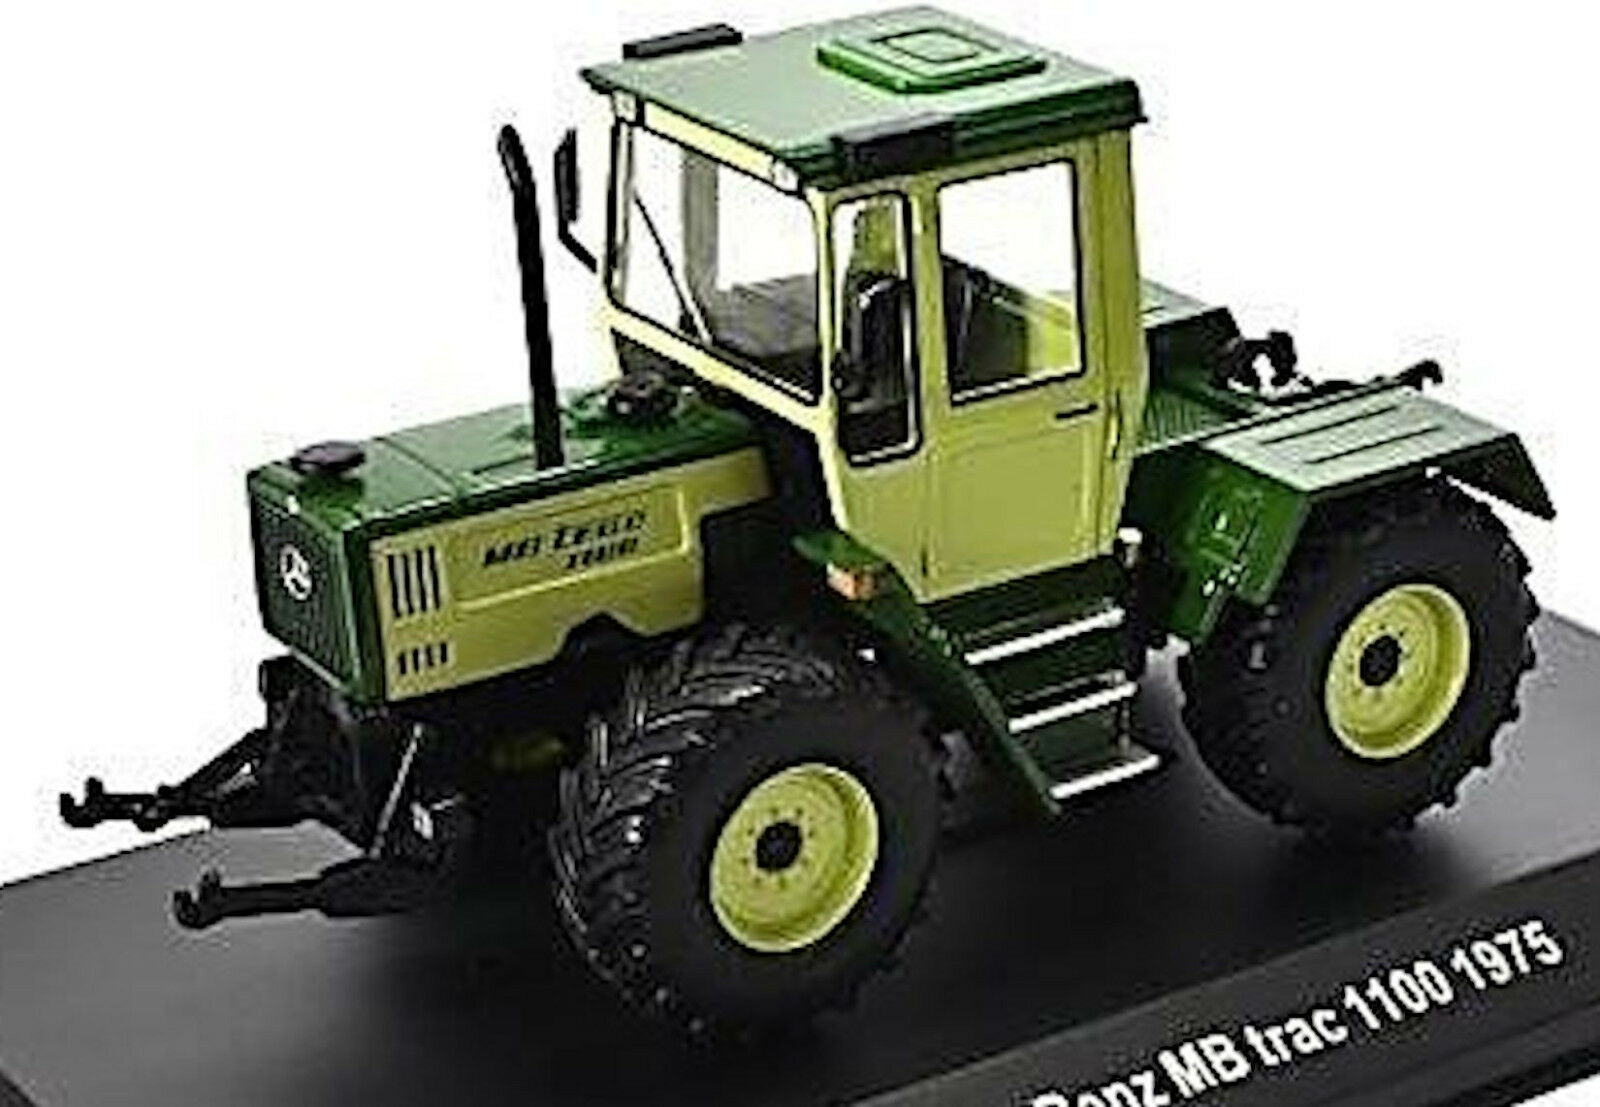 Mercedes Benz MB Trac 1100 - 1975 Tractor Tug Green Green 1 43